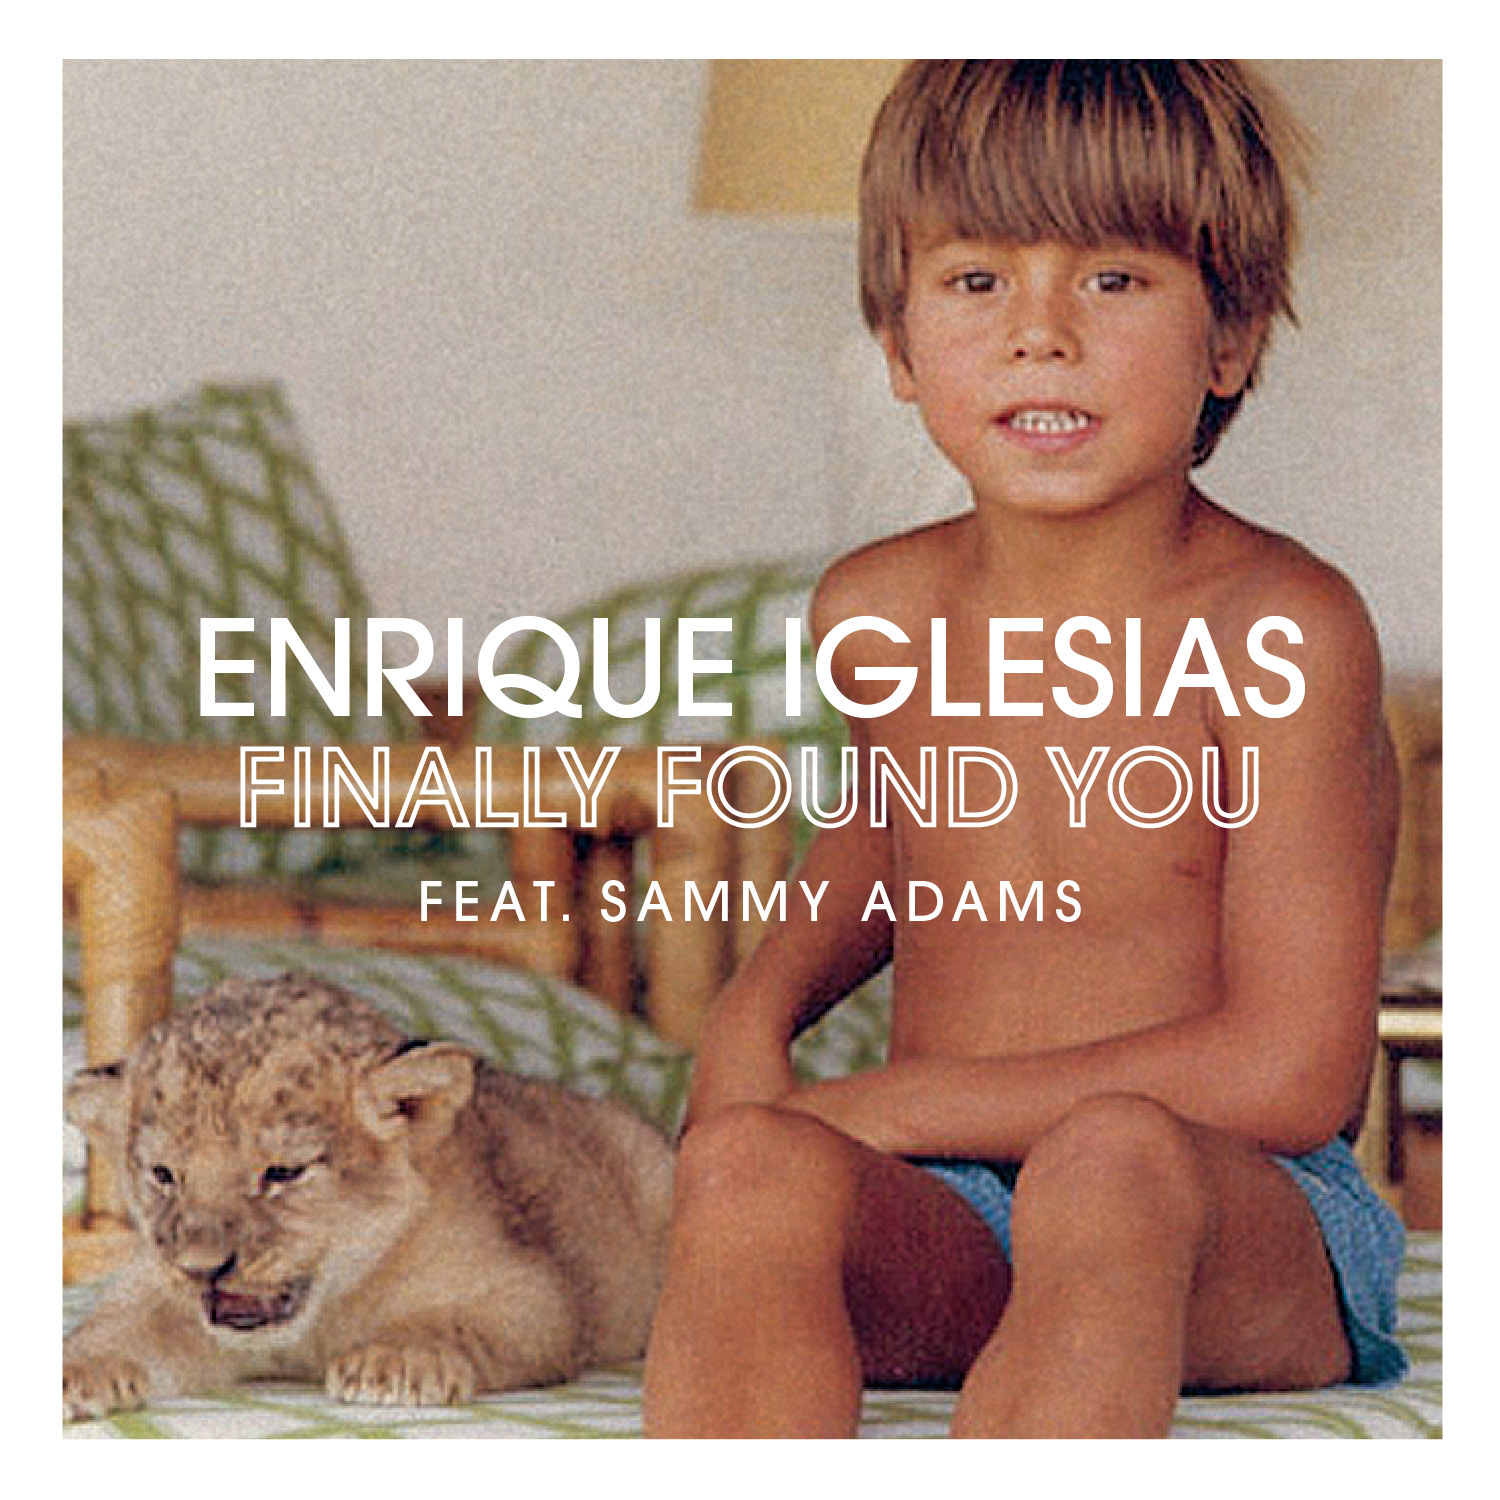 http://3.bp.blogspot.com/-tsbewK86M70/UIfcliUY4WI/AAAAAAAAHRE/qyMvnAWKlqo/s1600/Enrique+Iglesias+-+Finally+Found+You+ft.+Sammy+Adams.jpg